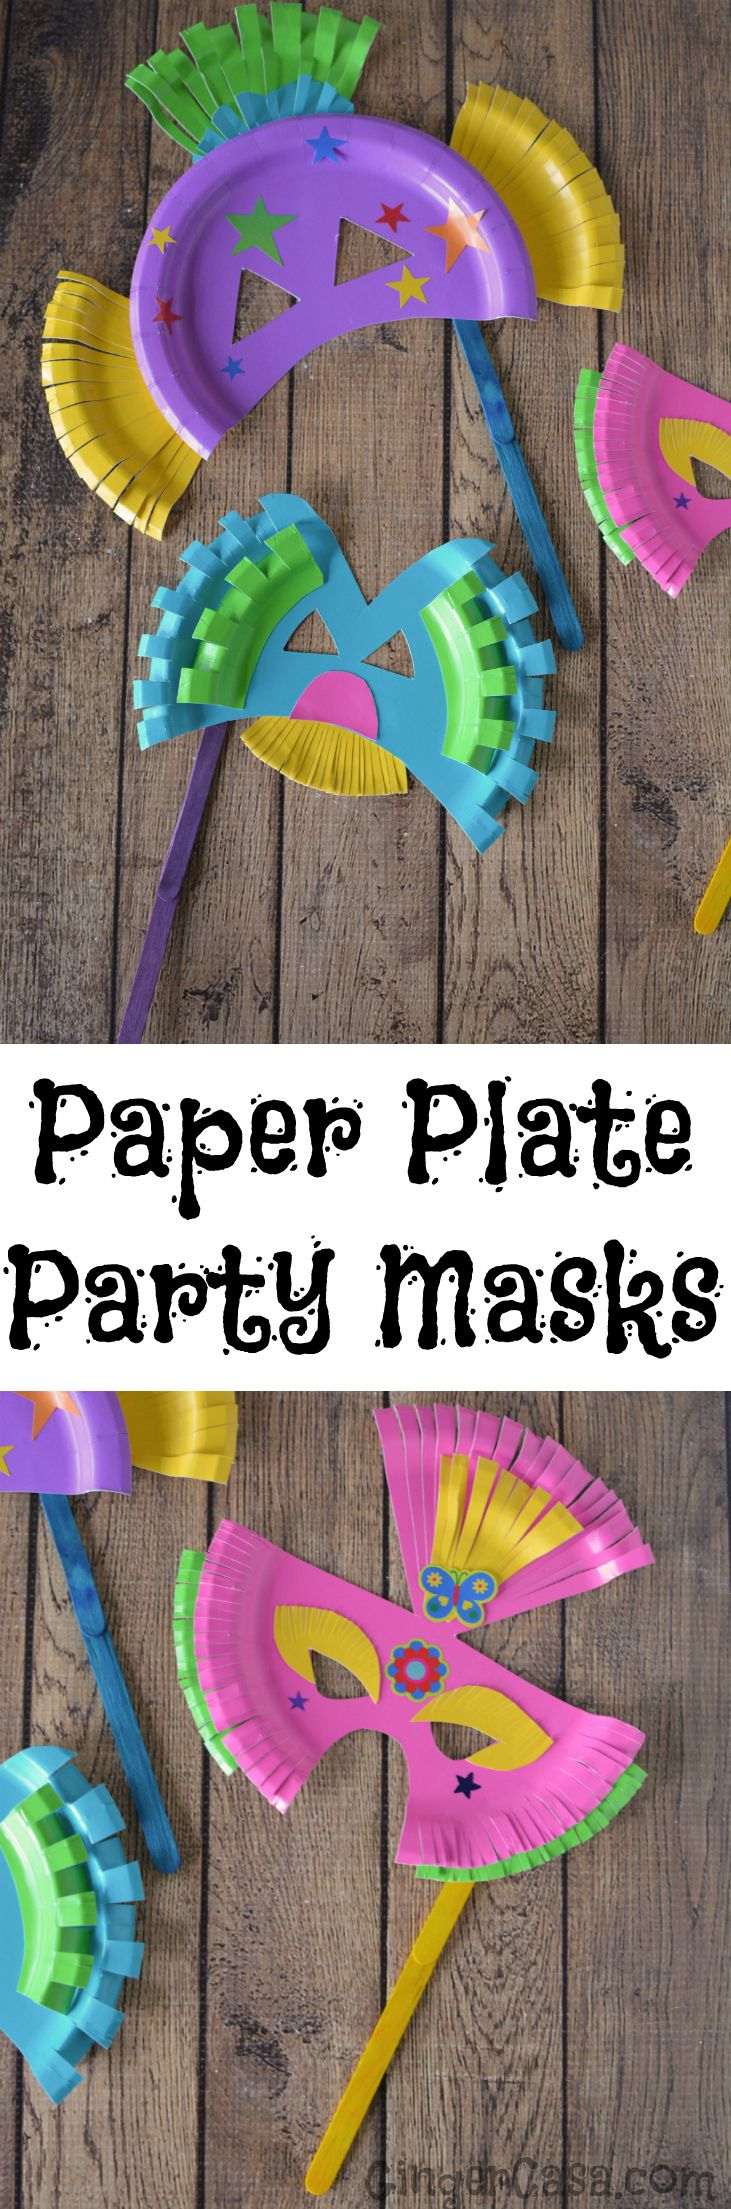 Who knew paper plates could be so fancy? Let their imagination run wild with these fun, easy paper plate party masks!